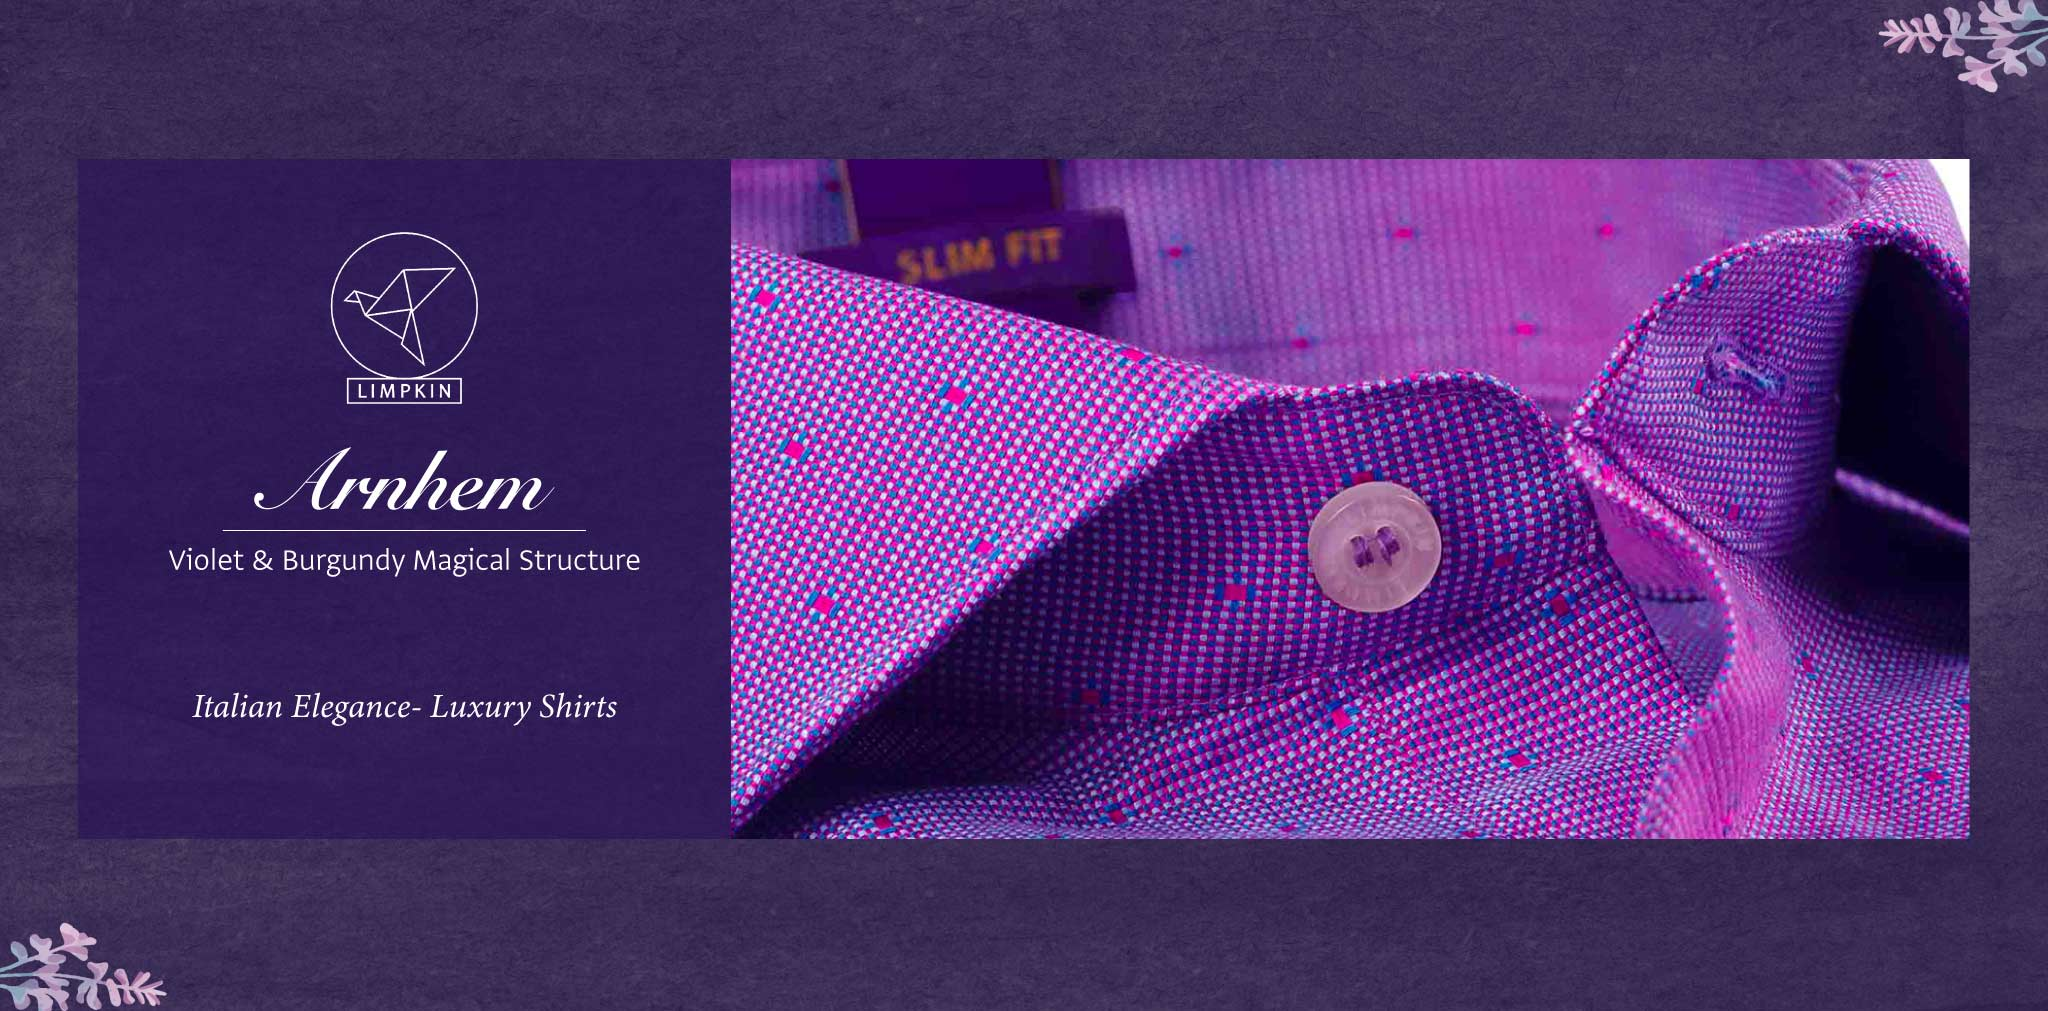 Arnhem- Violet & Burgundy Magical Structure- 2 Ply Pure Egyptian Giza Cotton- Delivery from 17th May - Banner